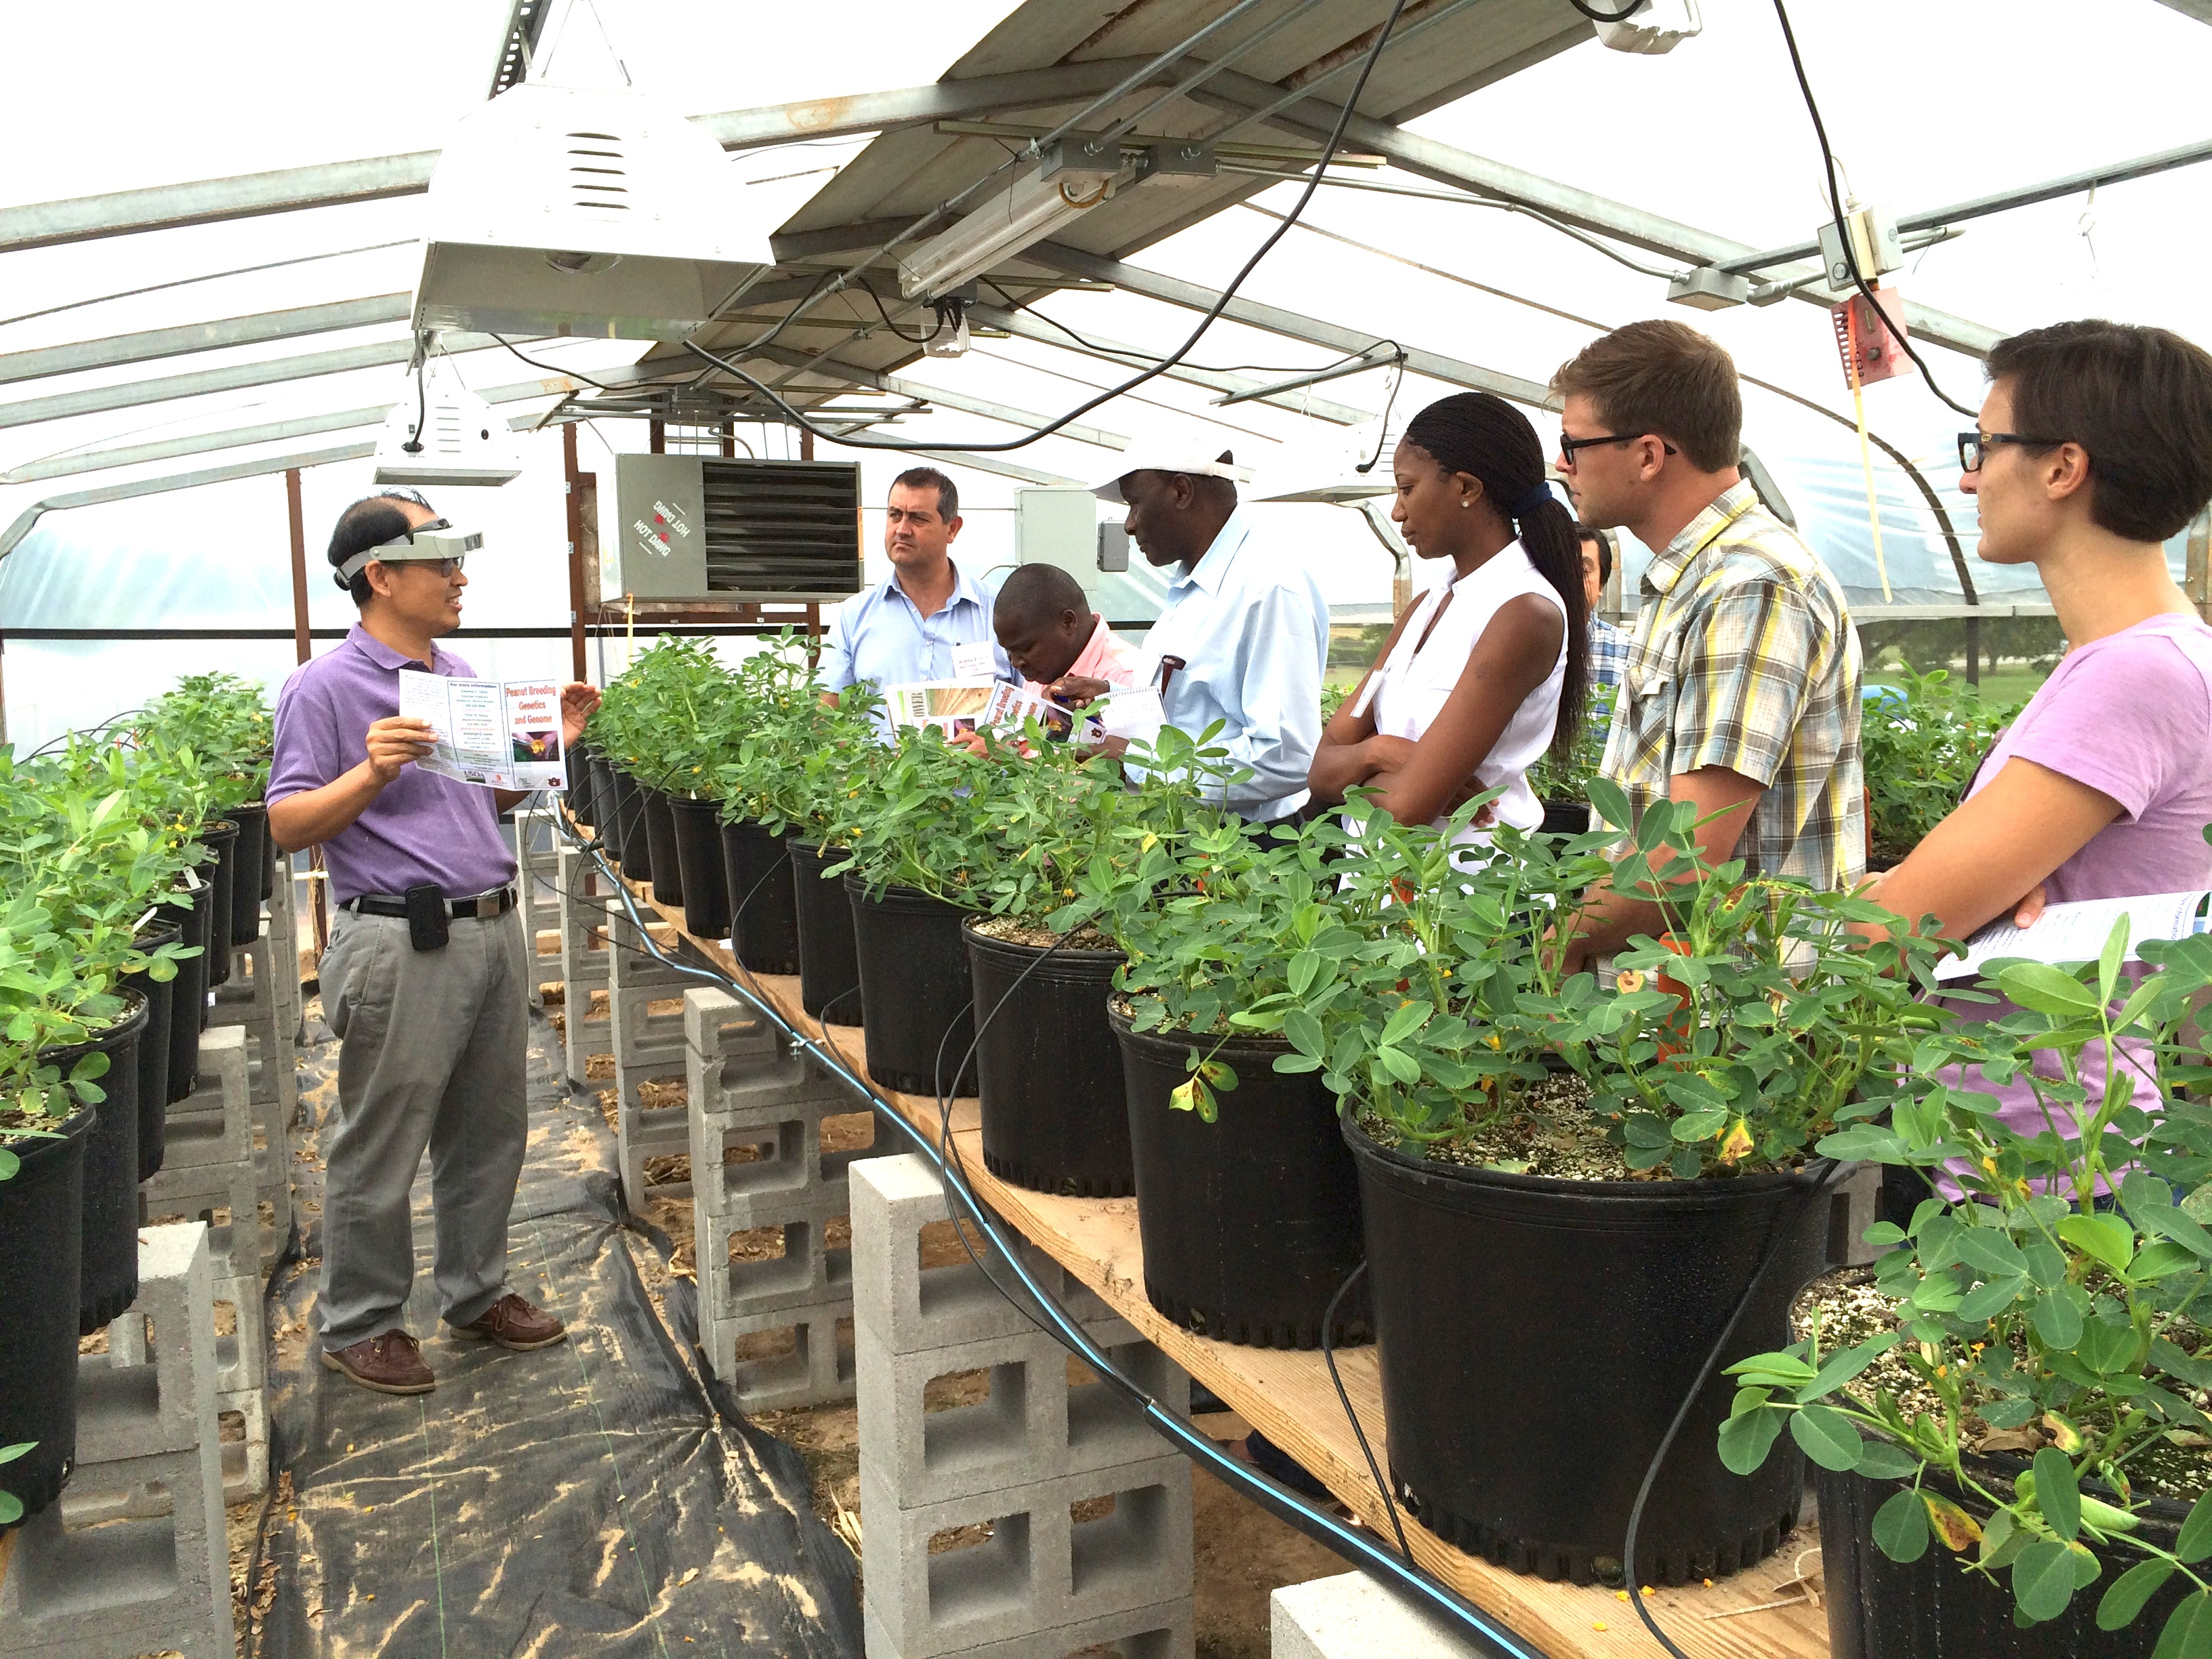 Charles Y. Chen, a peanut breeder with the USDA ARS National Peanut Research Laboratory in Dawson, leads a tour for a group of visiting international scientists.  Pictured left to right with Chen are Andrew Emmott, Amade Muitia, Isaac Minde, Alice Mweetwa, Jamie Rhoads and Dominique LaForest.